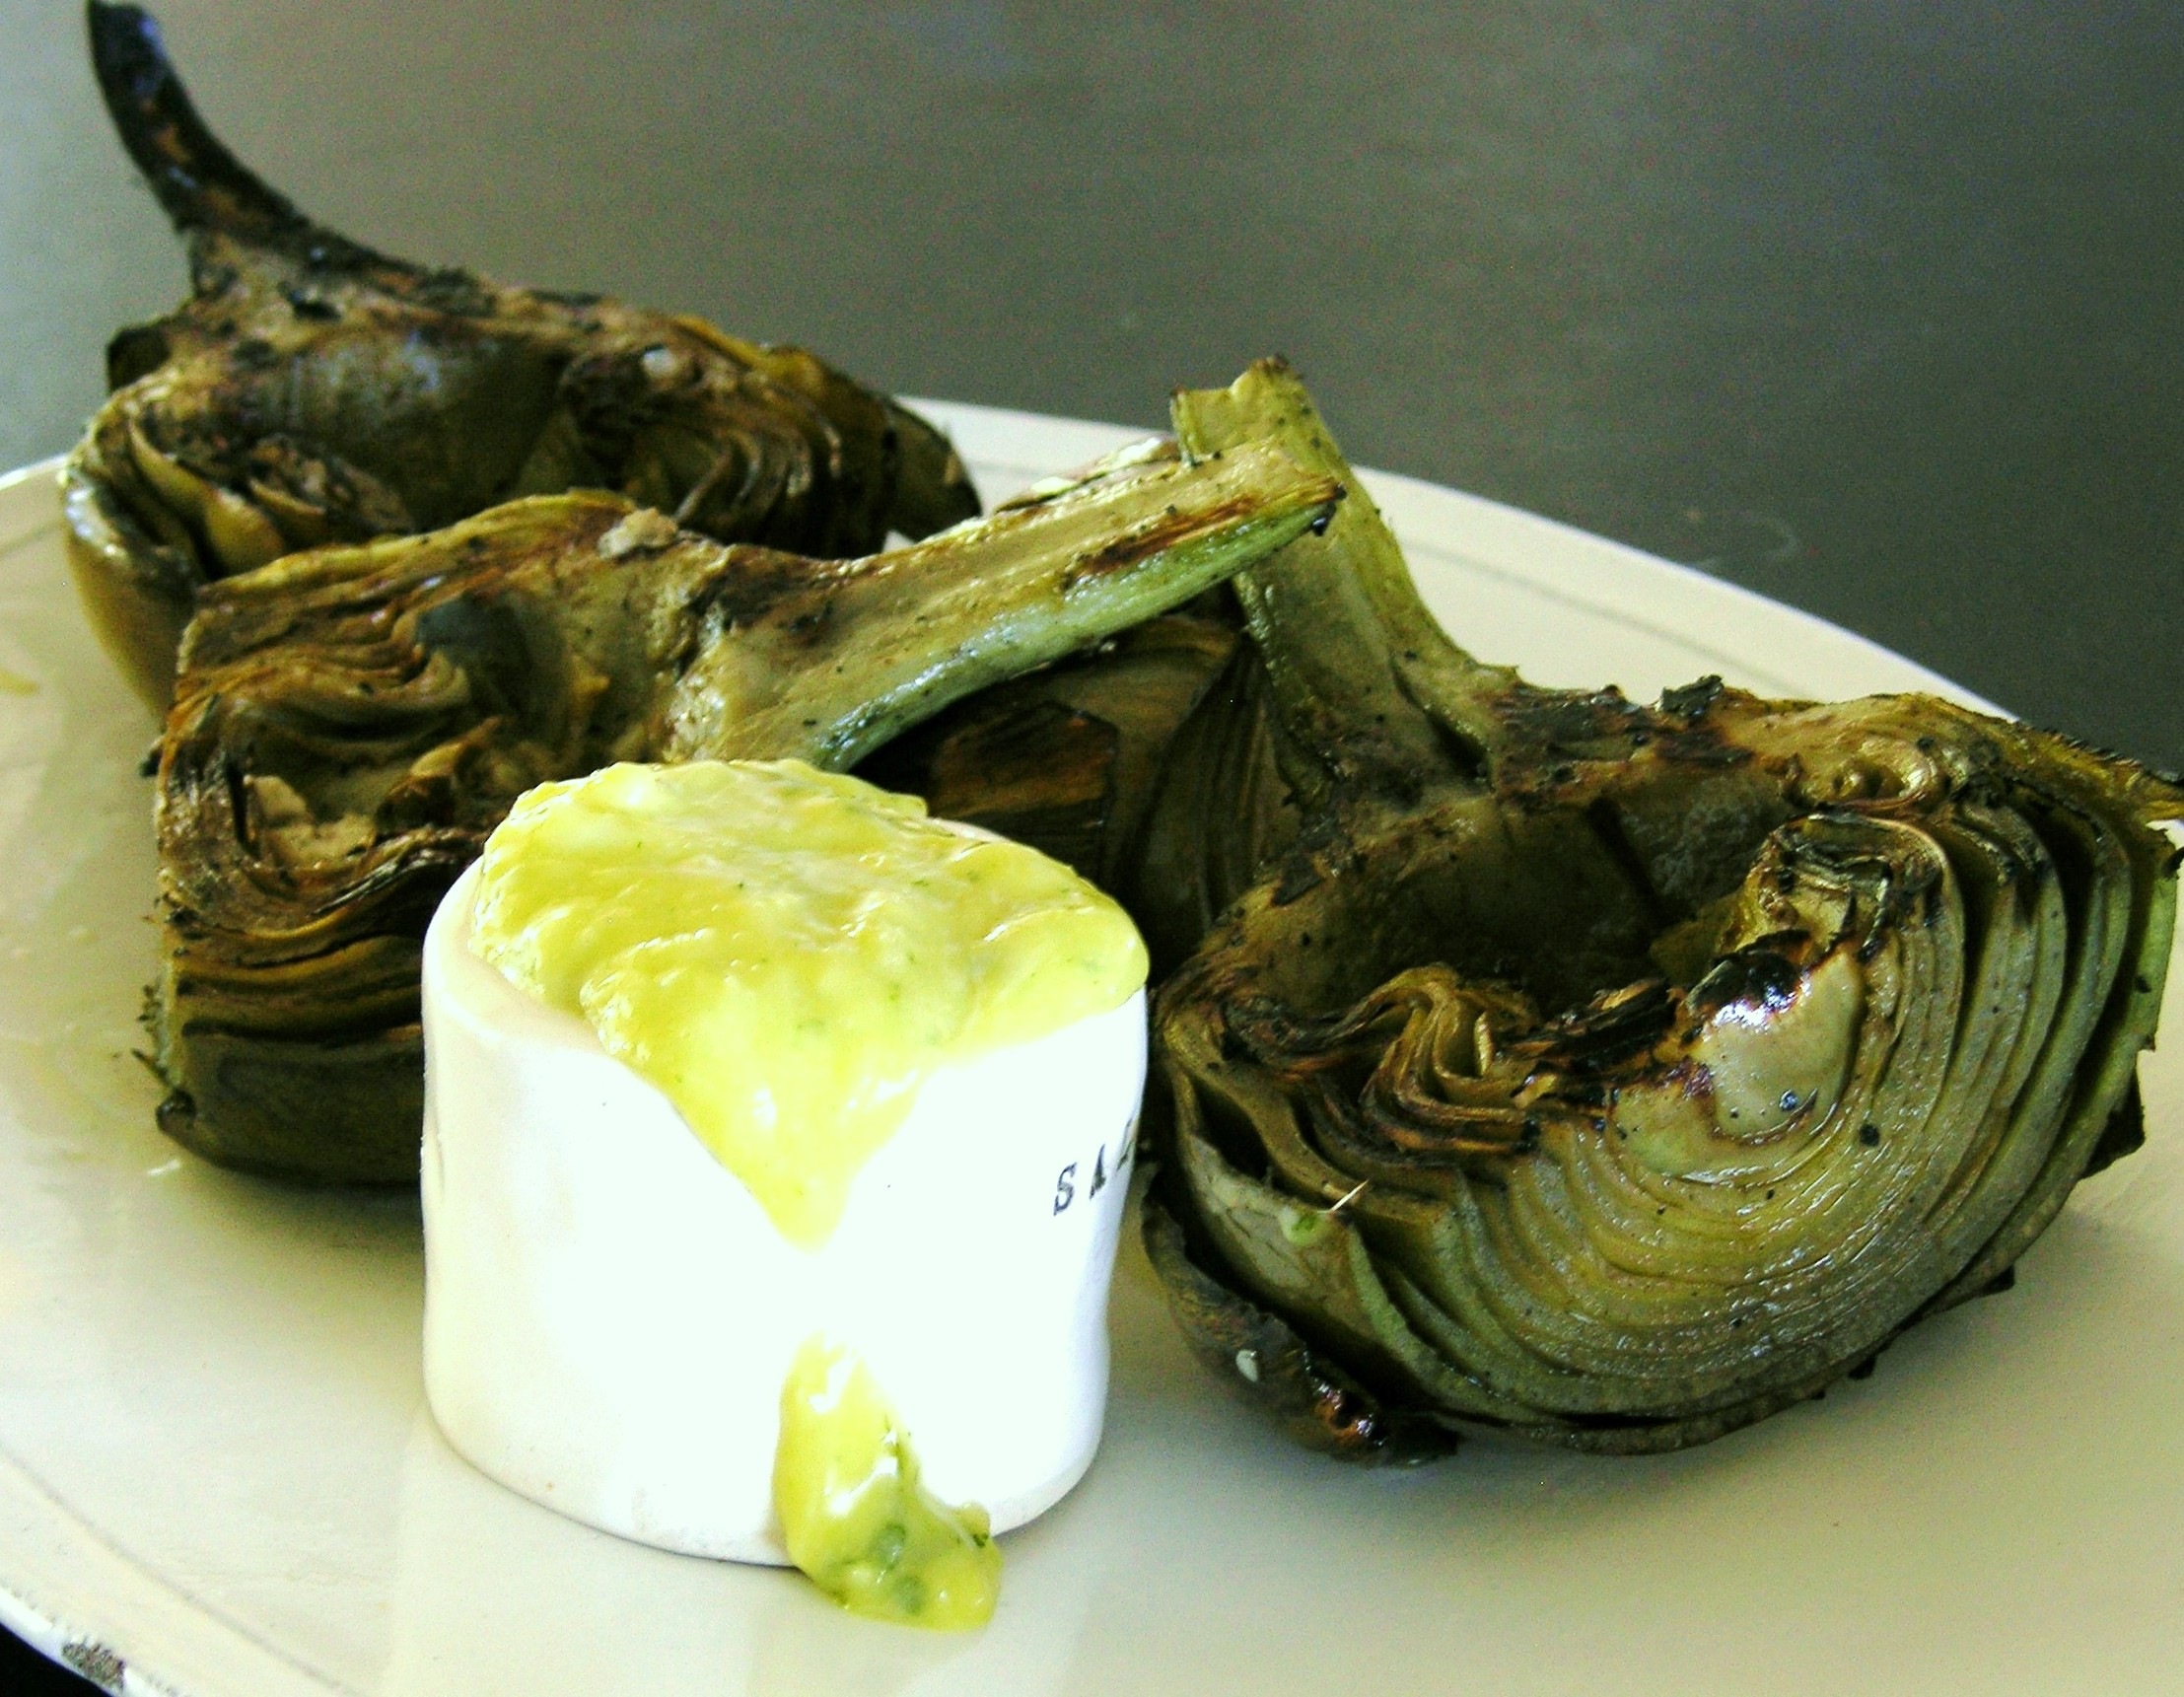 Tarragon-Lemon Aioli Served with Grilled Artichokes Recipe on Food52